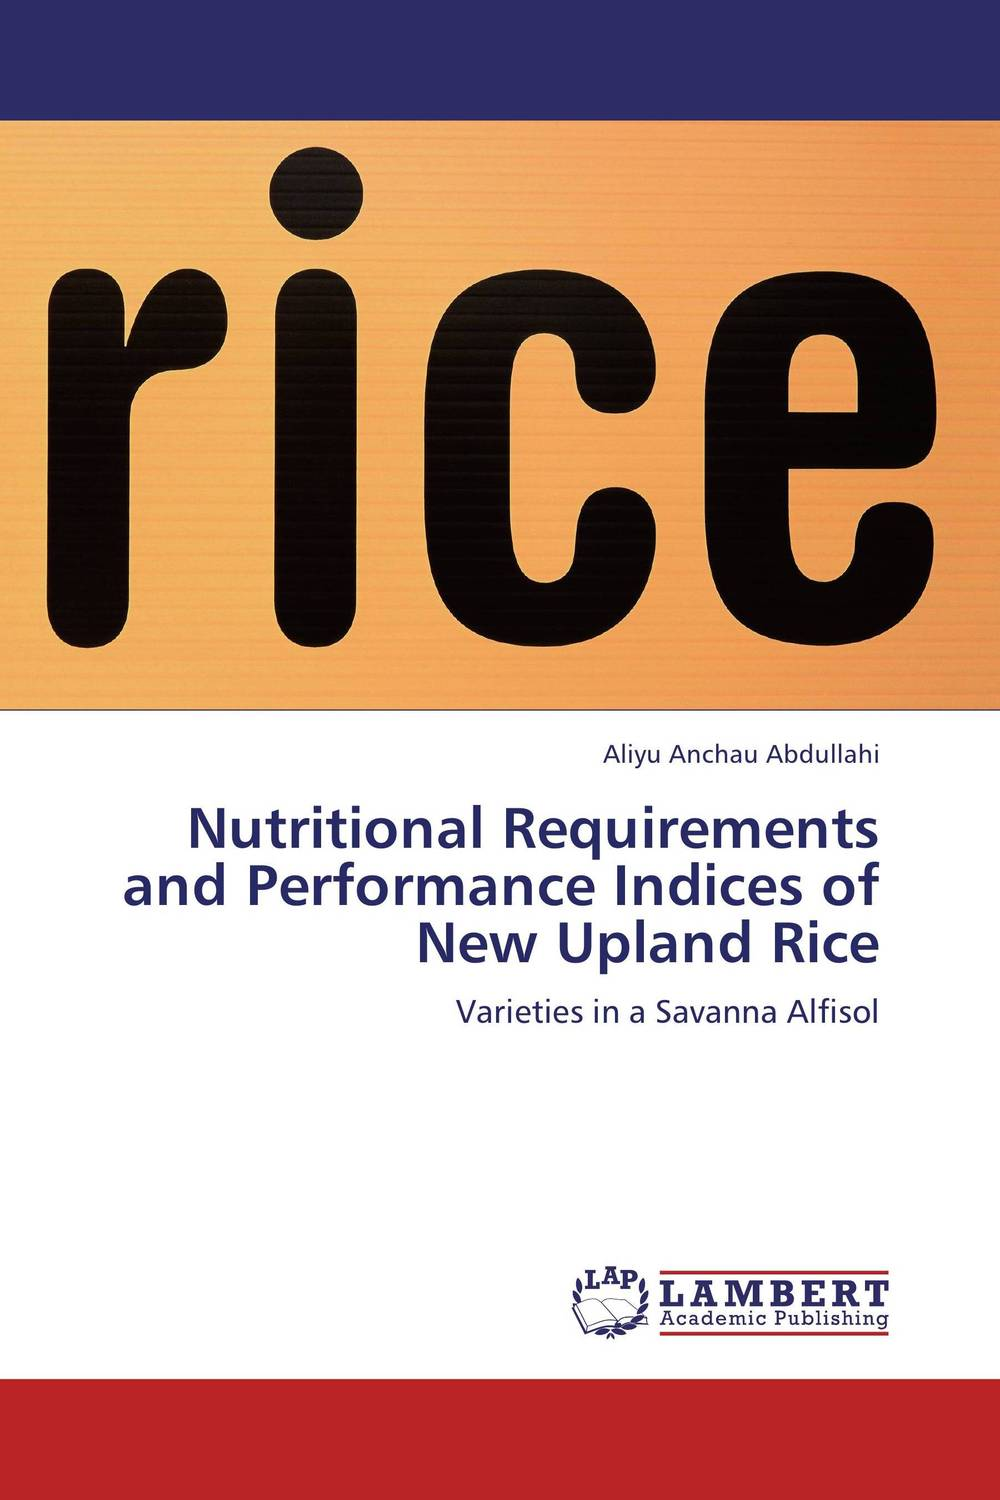 Nutritional Requirements and Performance Indices of New Upland Rice brijesh yadav and rakesh kumar soil zinc fractions and nutritional composition of seeded rice